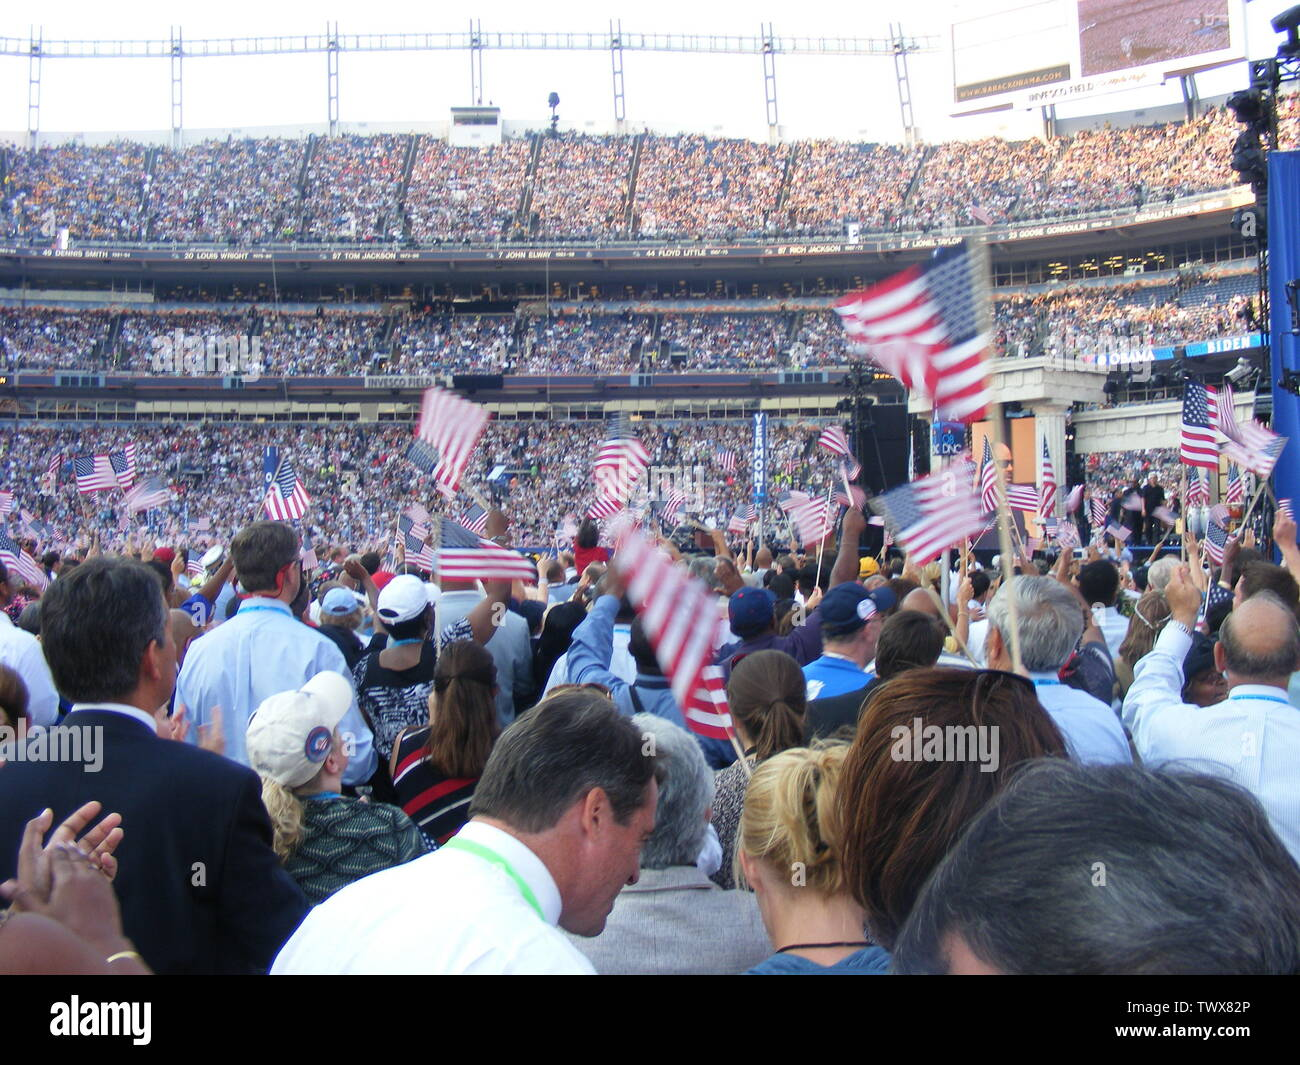 'English: inside invesco field during 2008 dnc; August 2008; Own work (Original text:  I created this work entirely by myself.); «Marylandstater» «reply»; ' - Stock Image